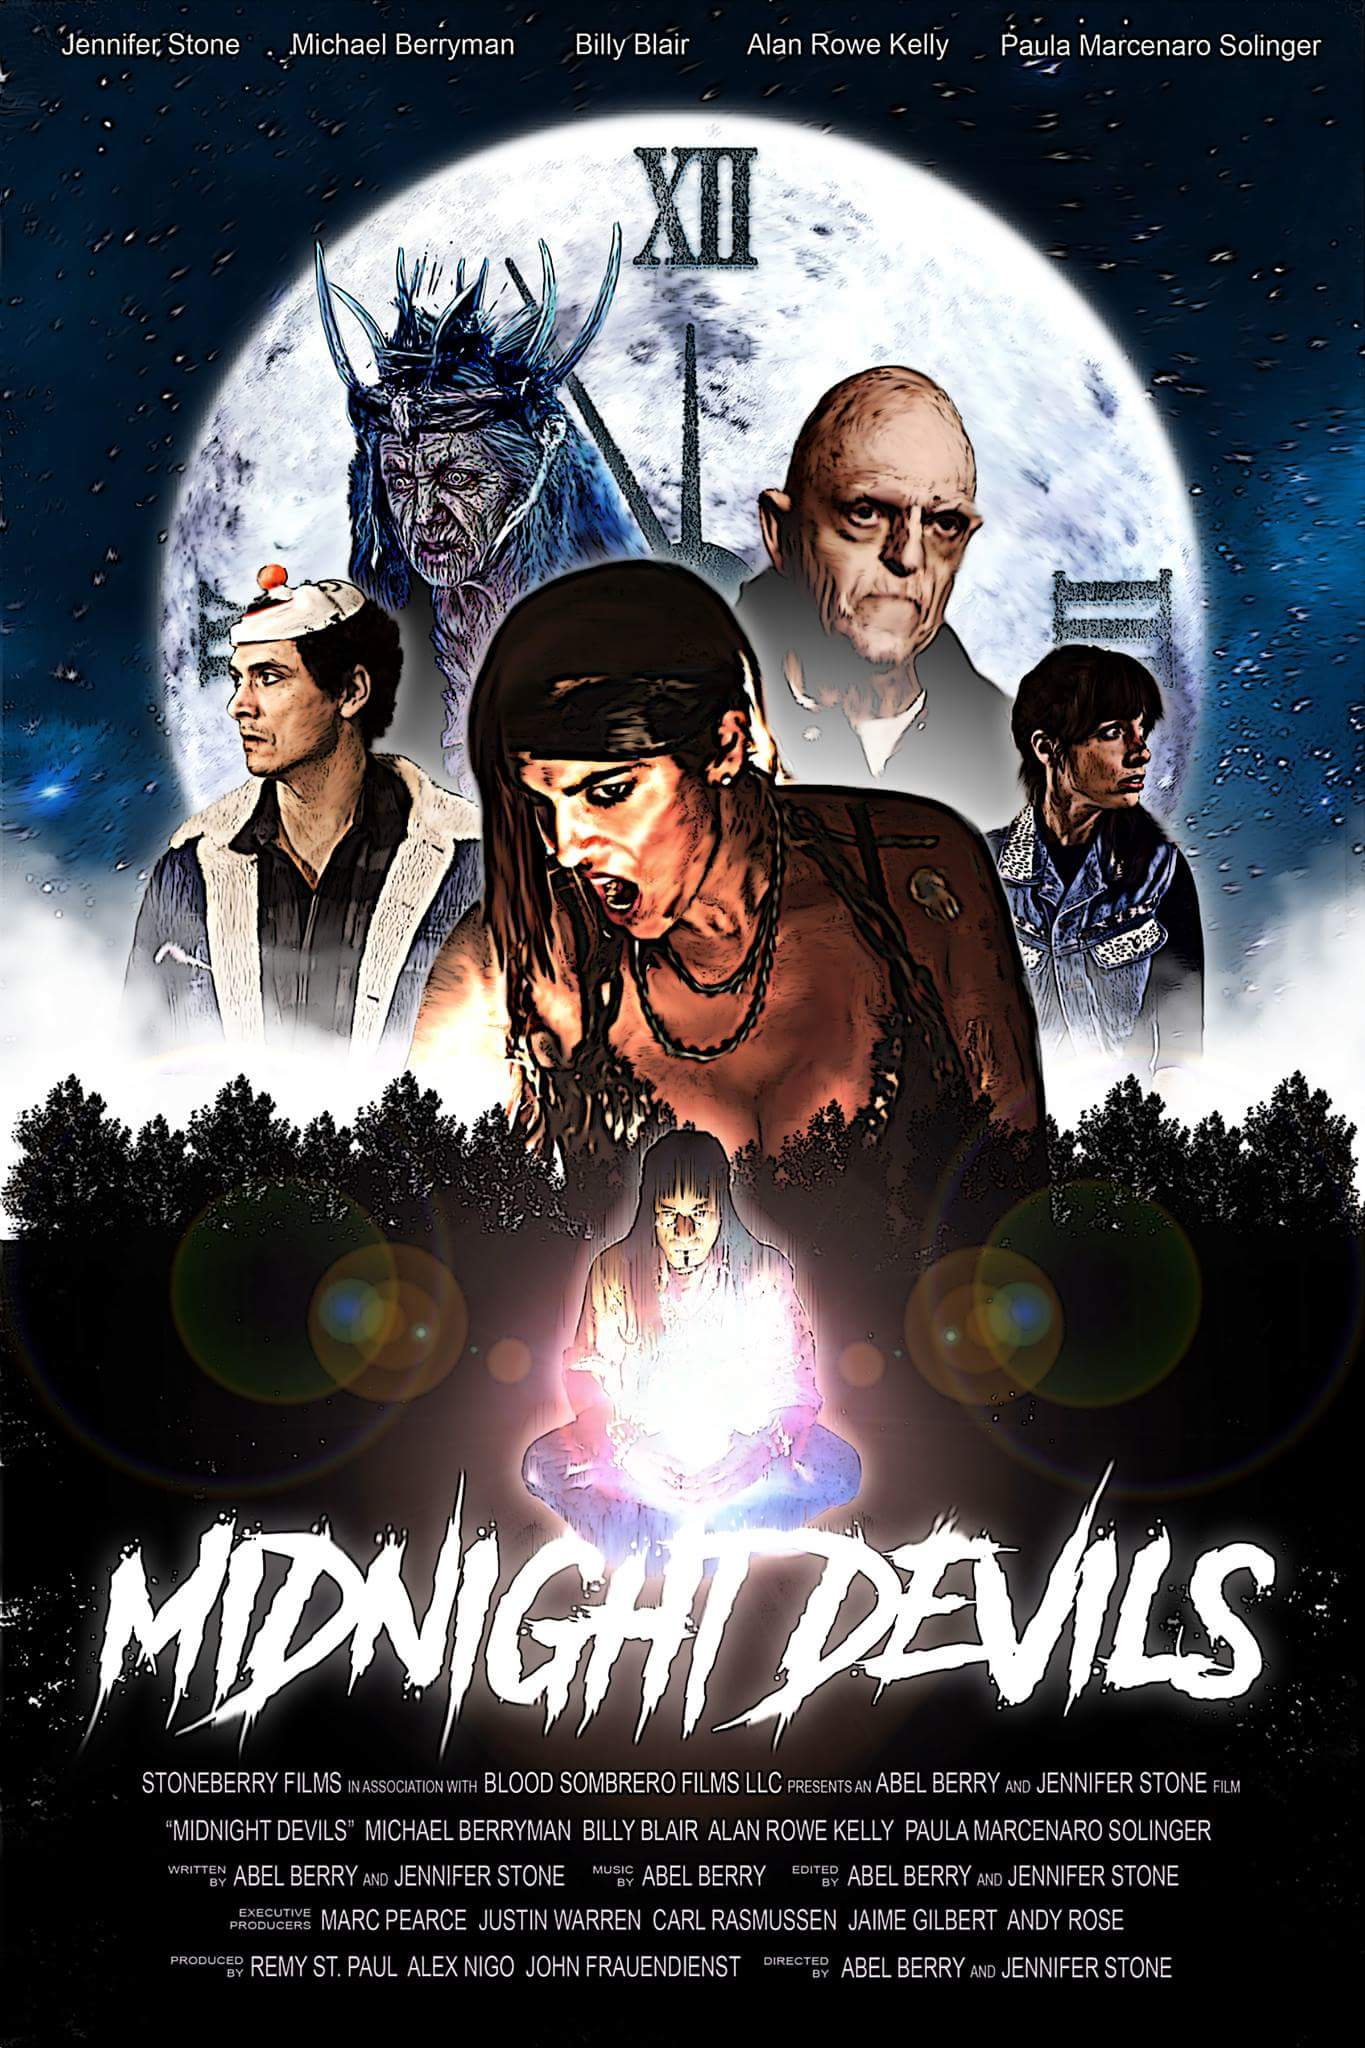 Midnight Devils Screen Shot 1